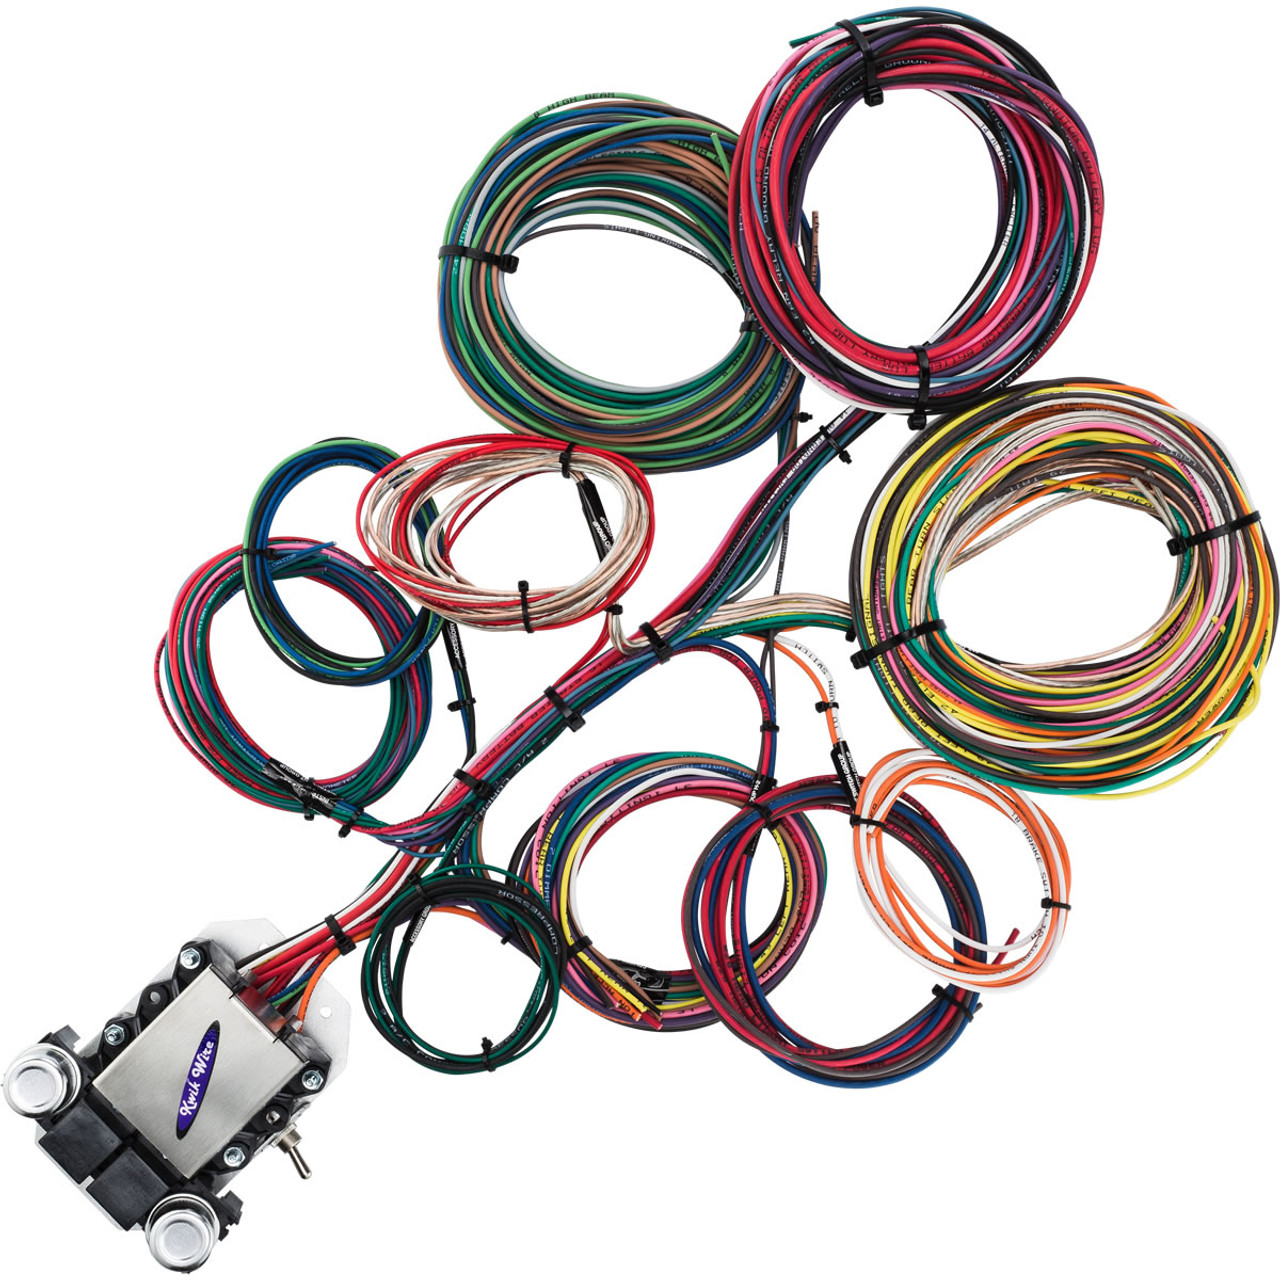 14 circuit ford wire harness kwikwire com electrify your ride rh kwikwire com ford wiring harness repair ford wiring harness retainer